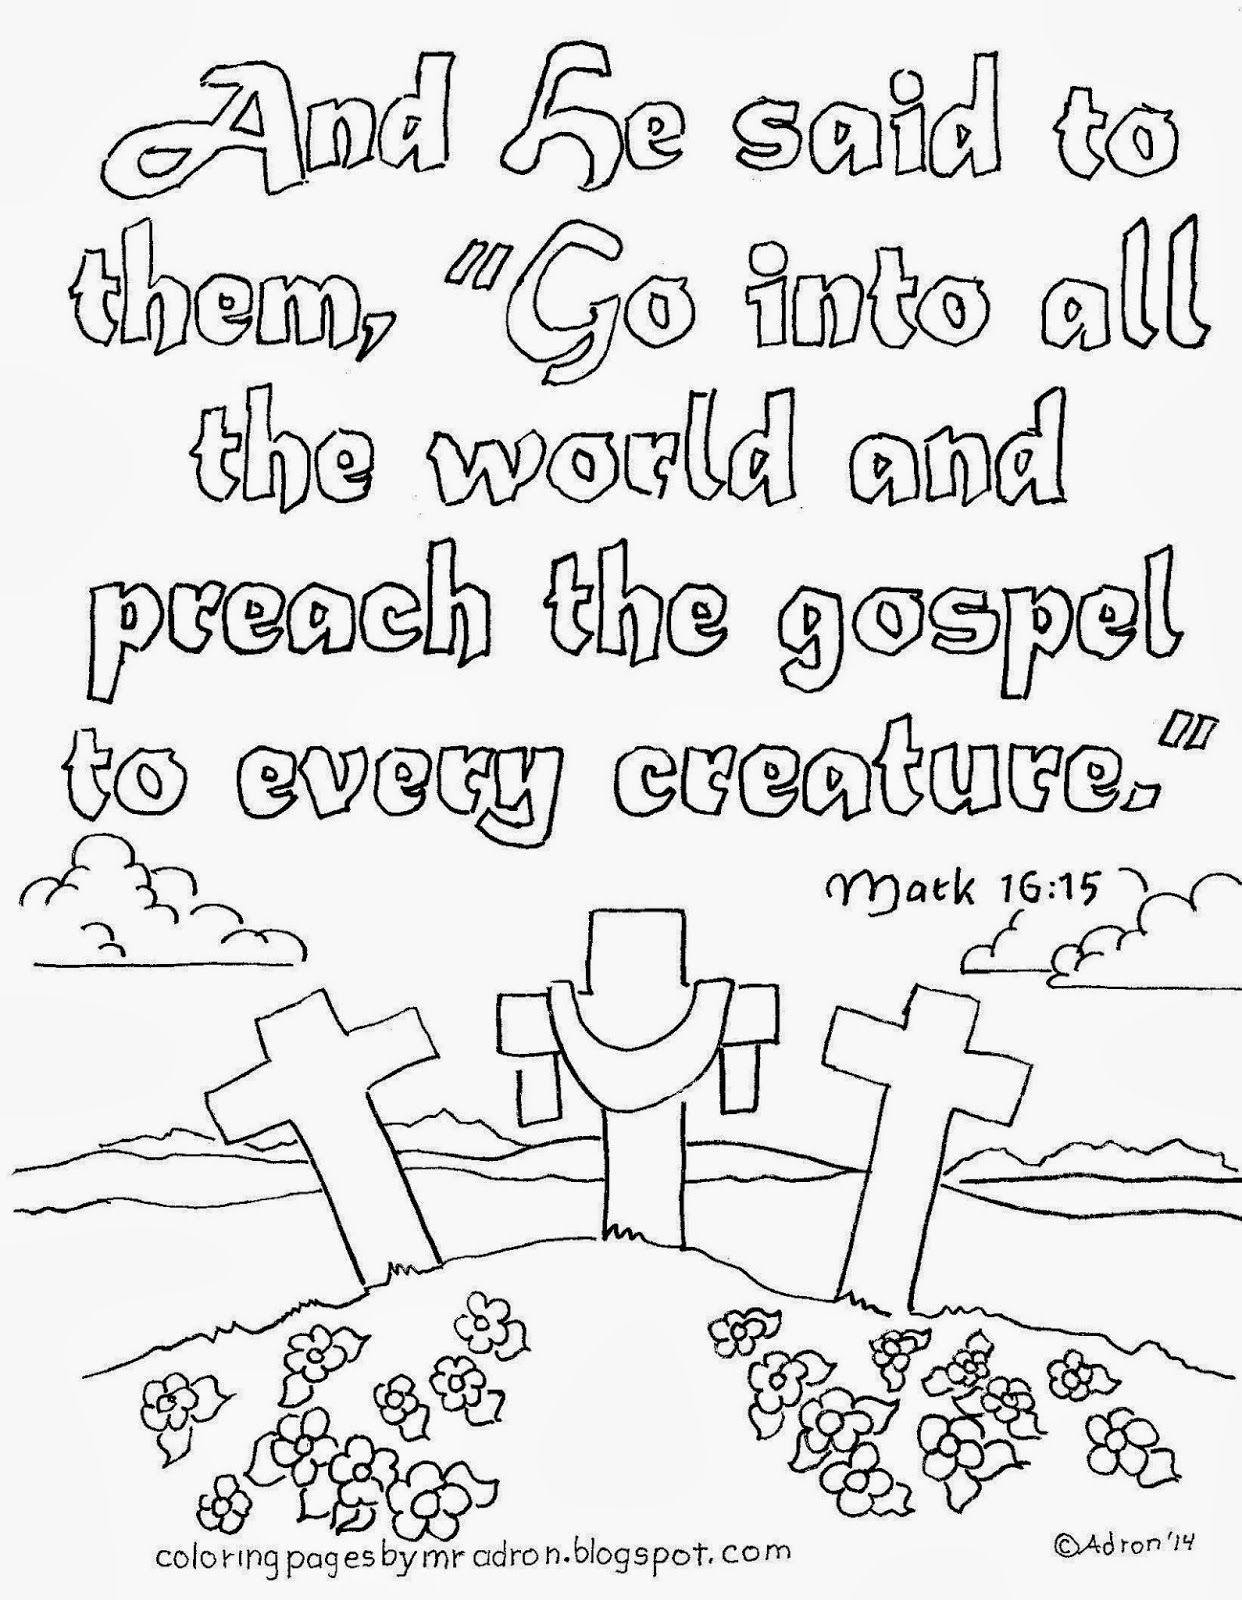 Go Preach The Gospel Coloring Page See More At My Blog